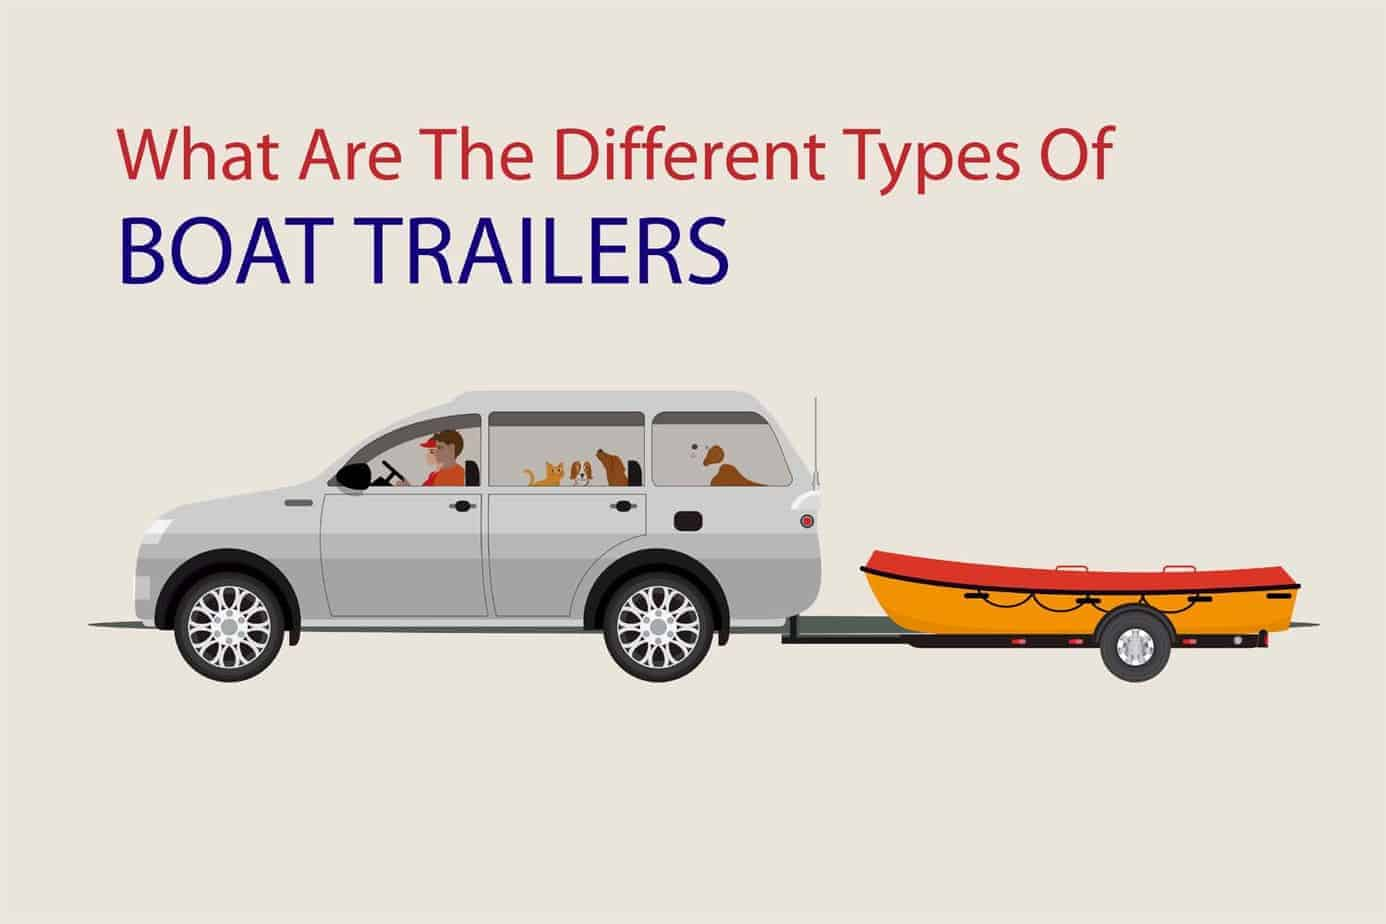 What Are The Different Types Of Boat Trailers